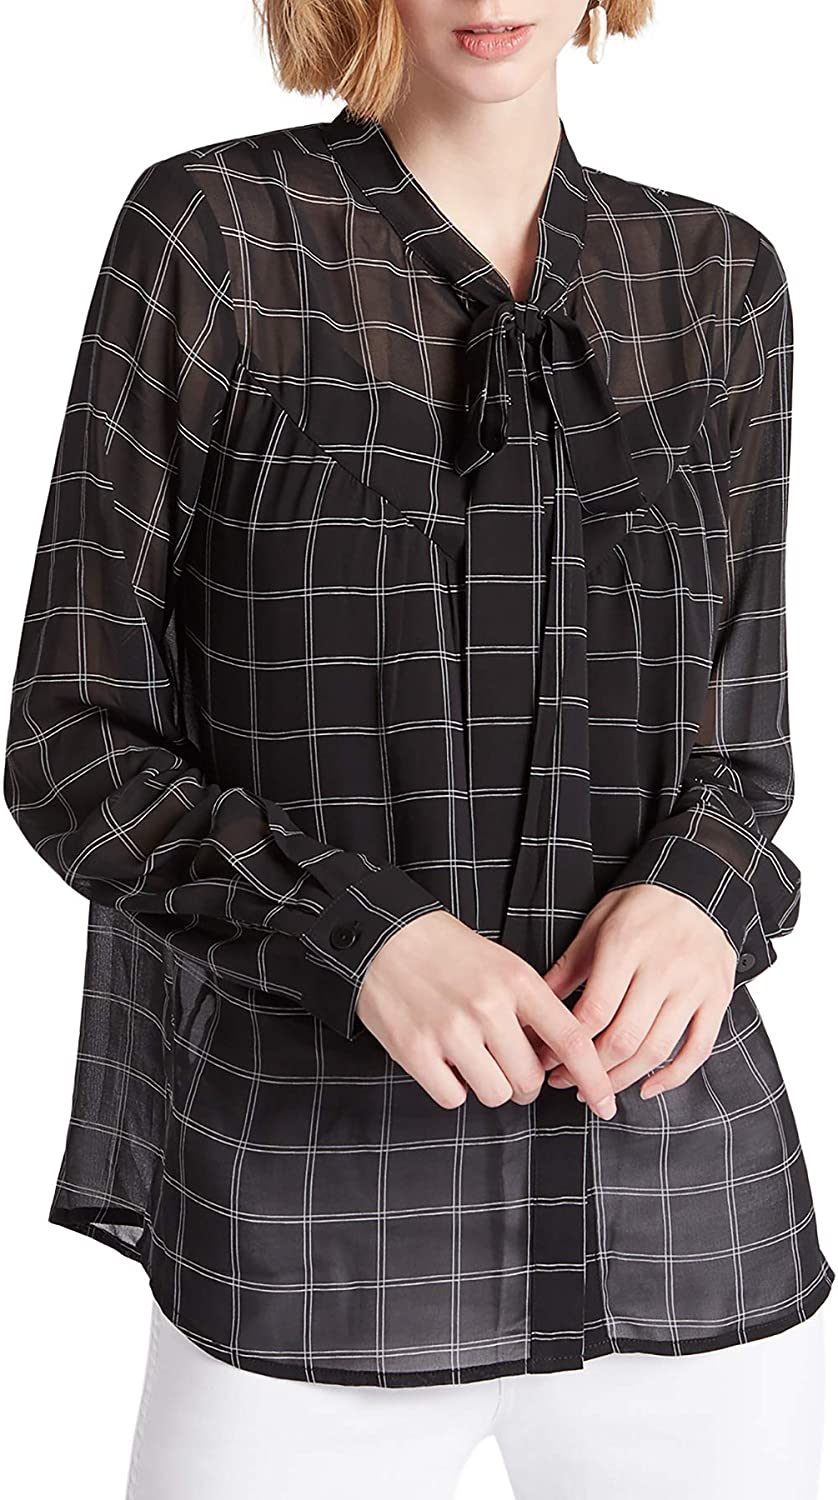 Our Heritage - Women's Button-Down Loose Shirt Blouse with Pussy-Bow Neckline